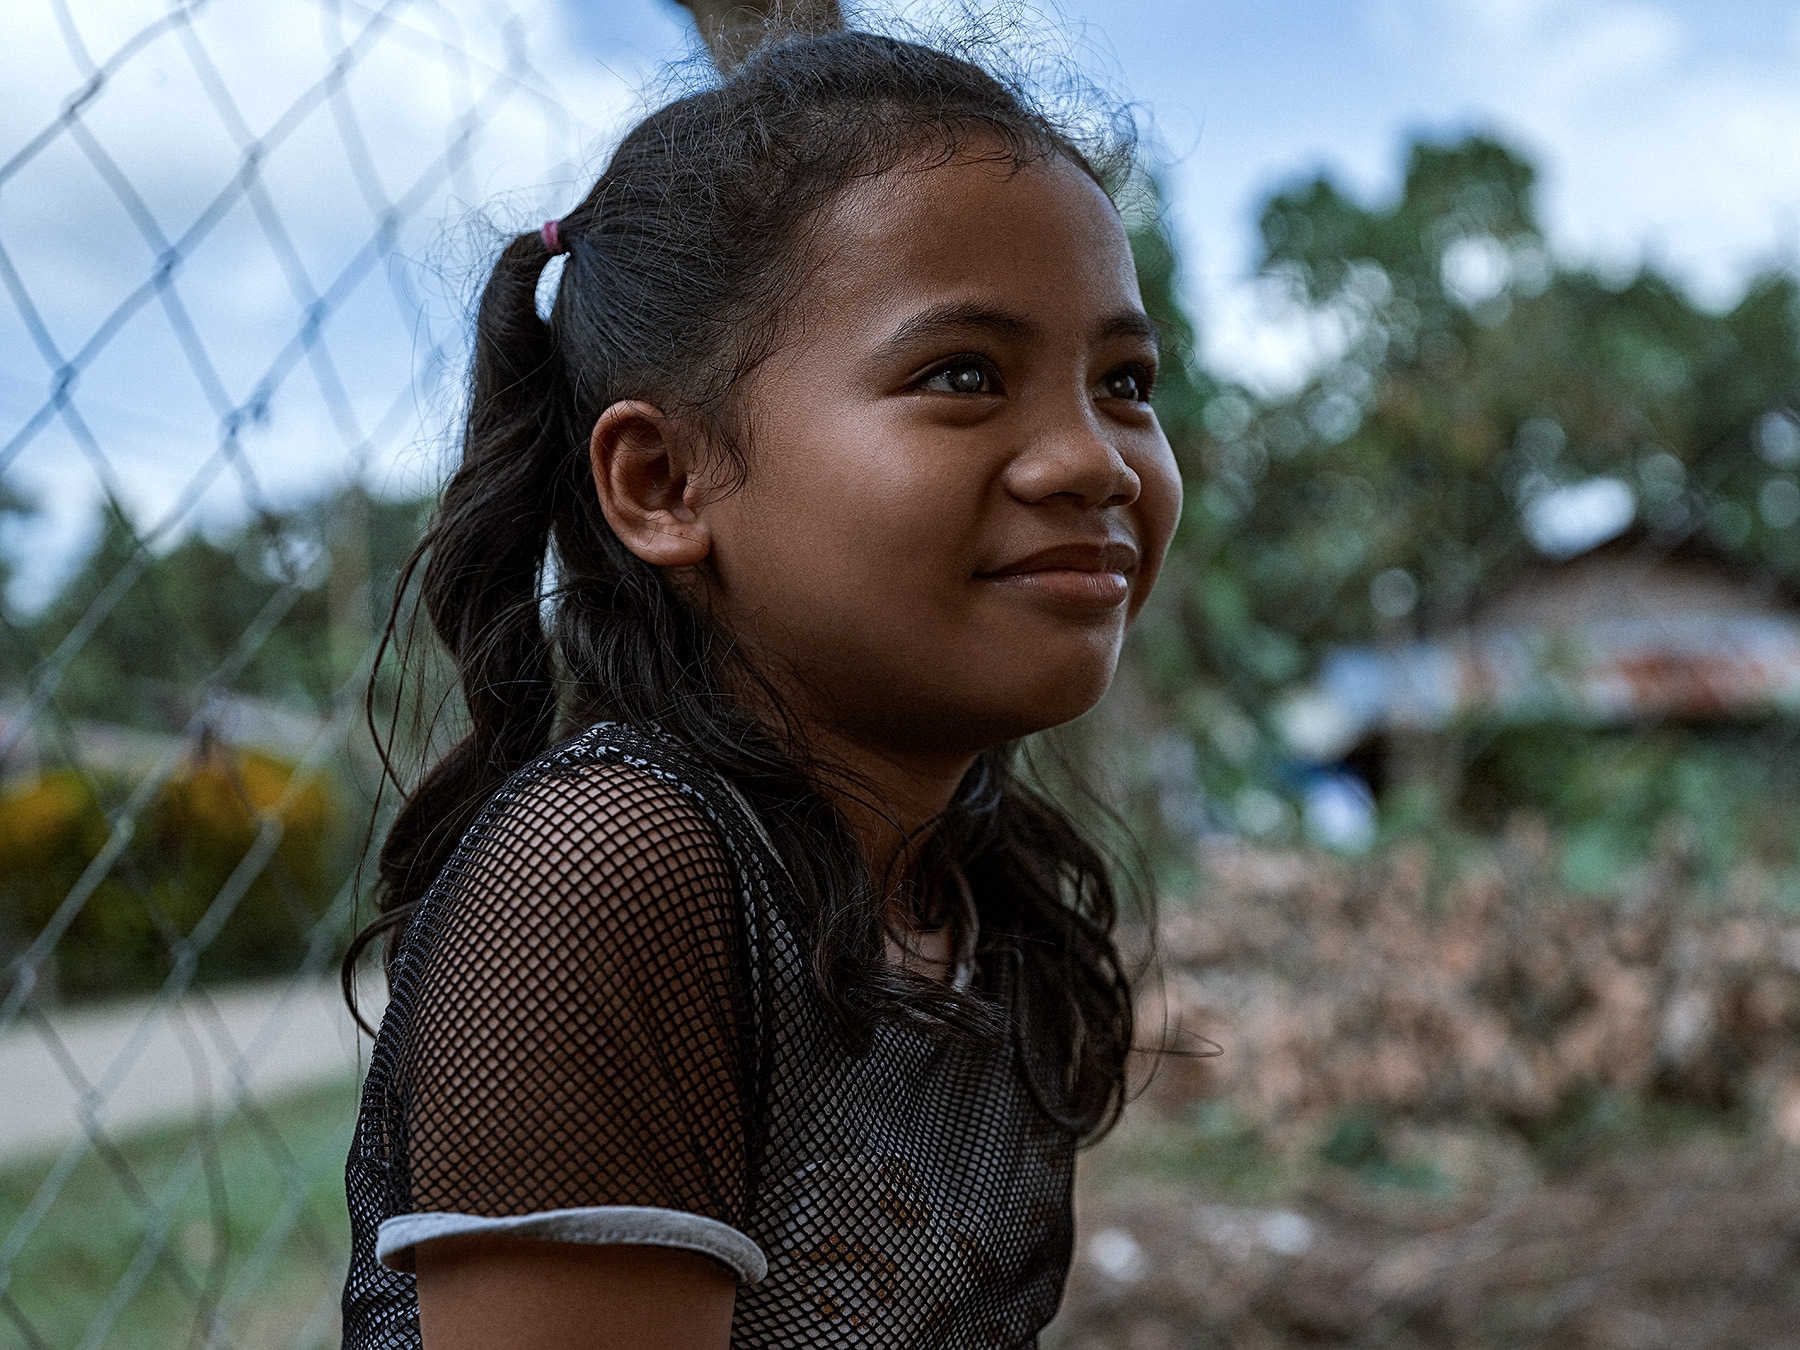 Good Boy Wolf Photographer, Philippines, young girl wearing a black top smiling